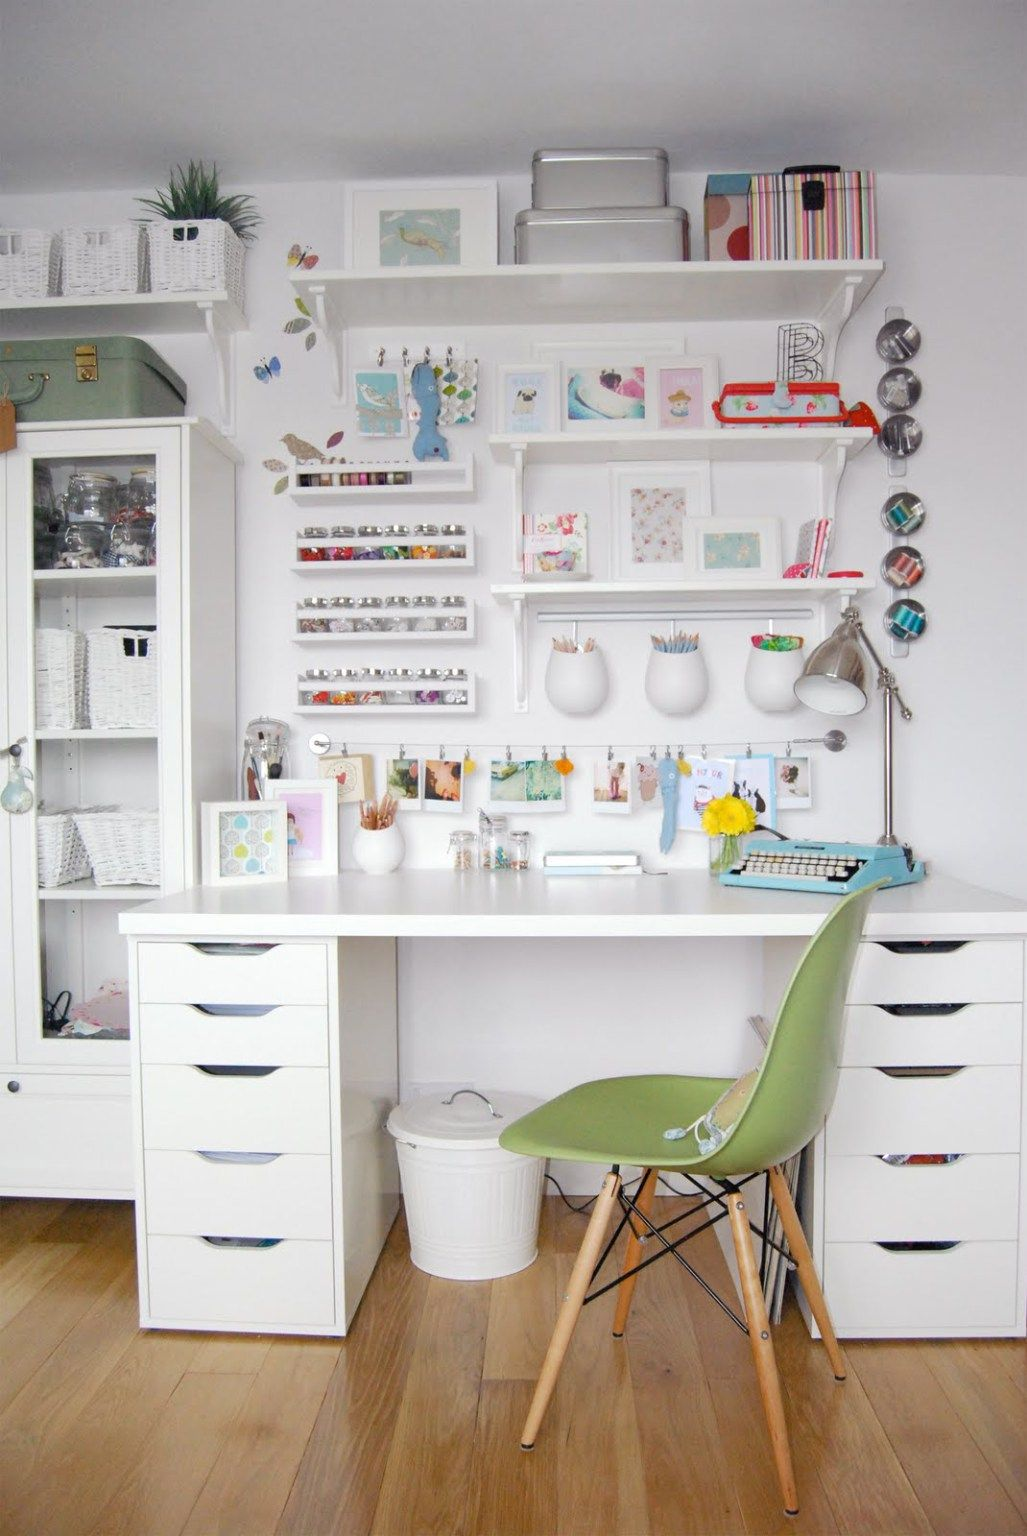 Ikea Craft Rooms   10 Organizing Ideas from REAL Ikea Craft Rooms. Ikea Craft Rooms   10 Organizing Ideas from REAL Ikea Craft Rooms